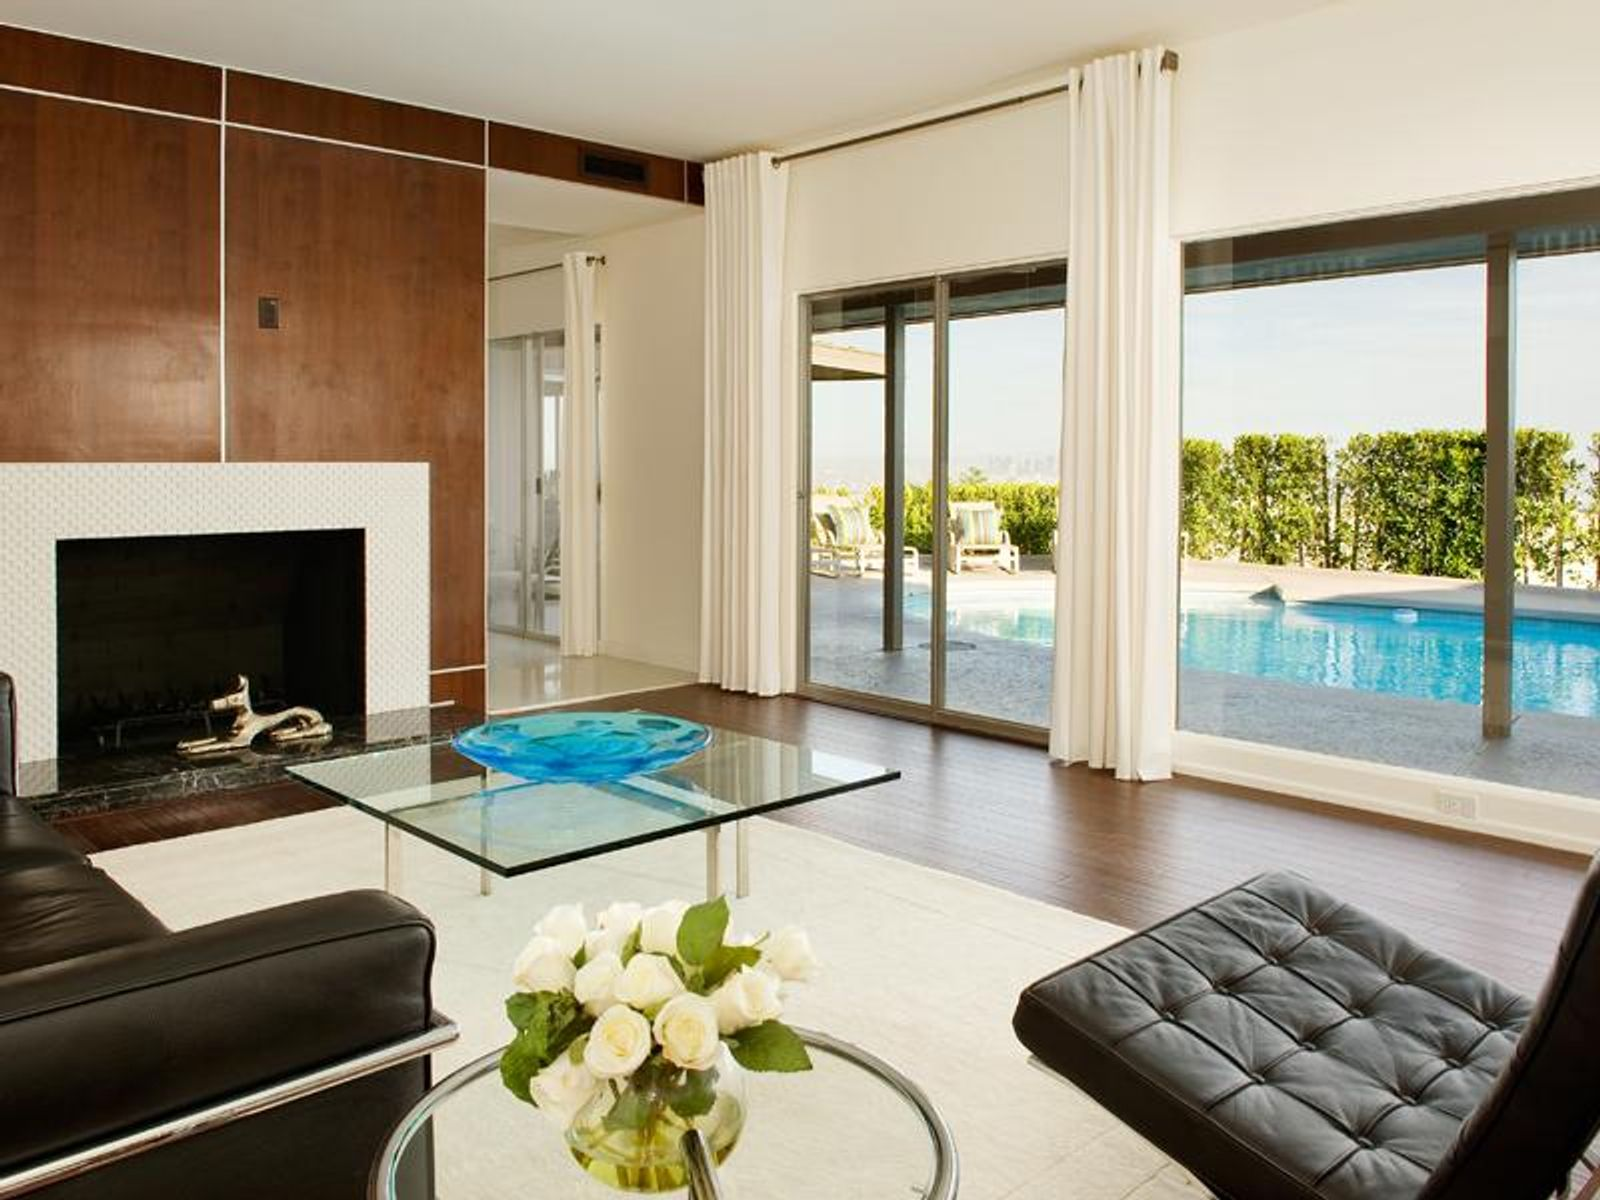 Lovely Contemporary with Pool and Views, Los Angeles CA Single Family Home - Los Angeles Real Estate